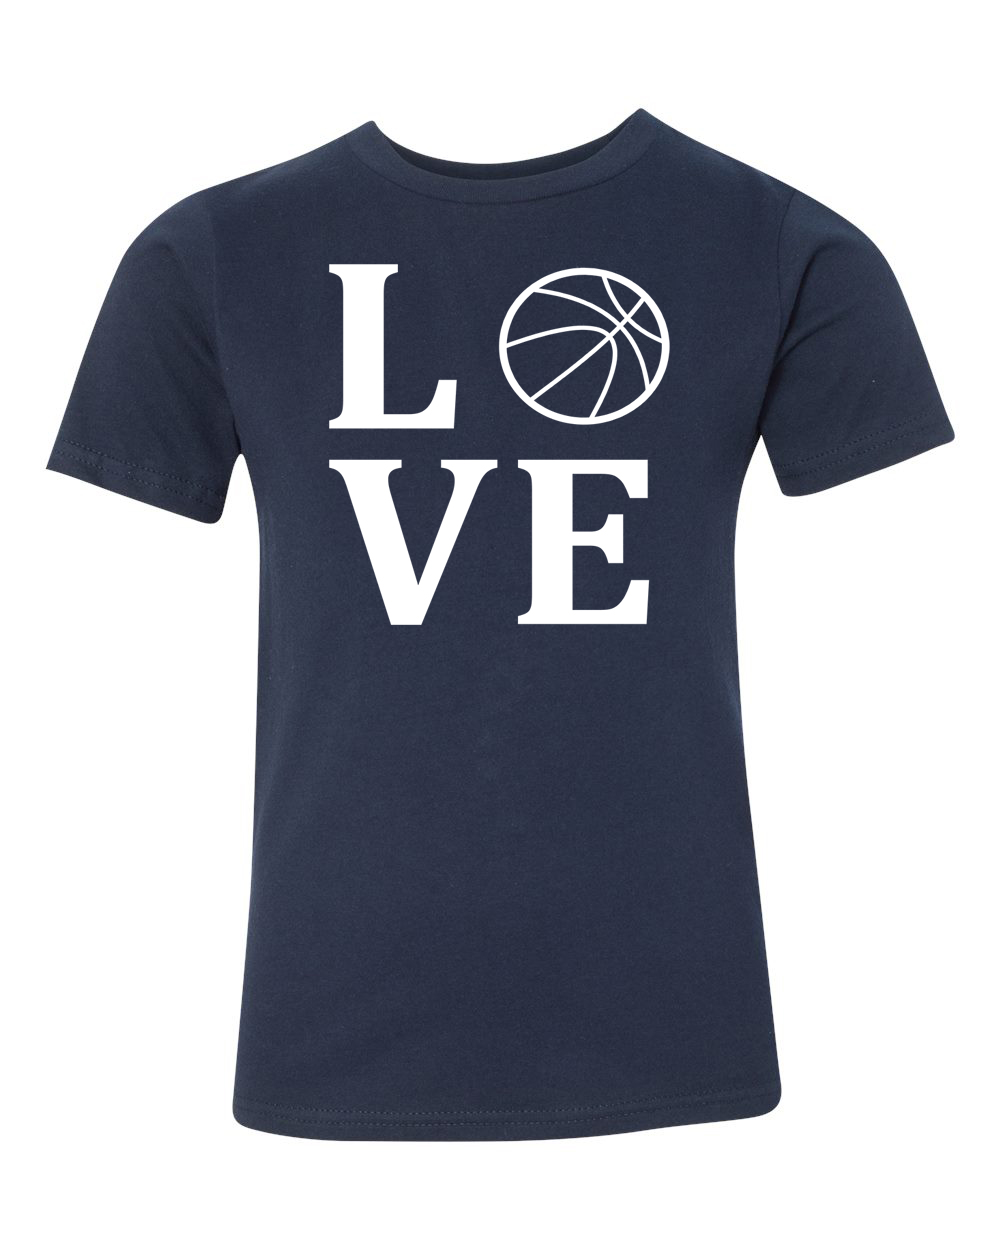 Love Basketball Sports Jersey Youth Short Sleeve T-Shirt